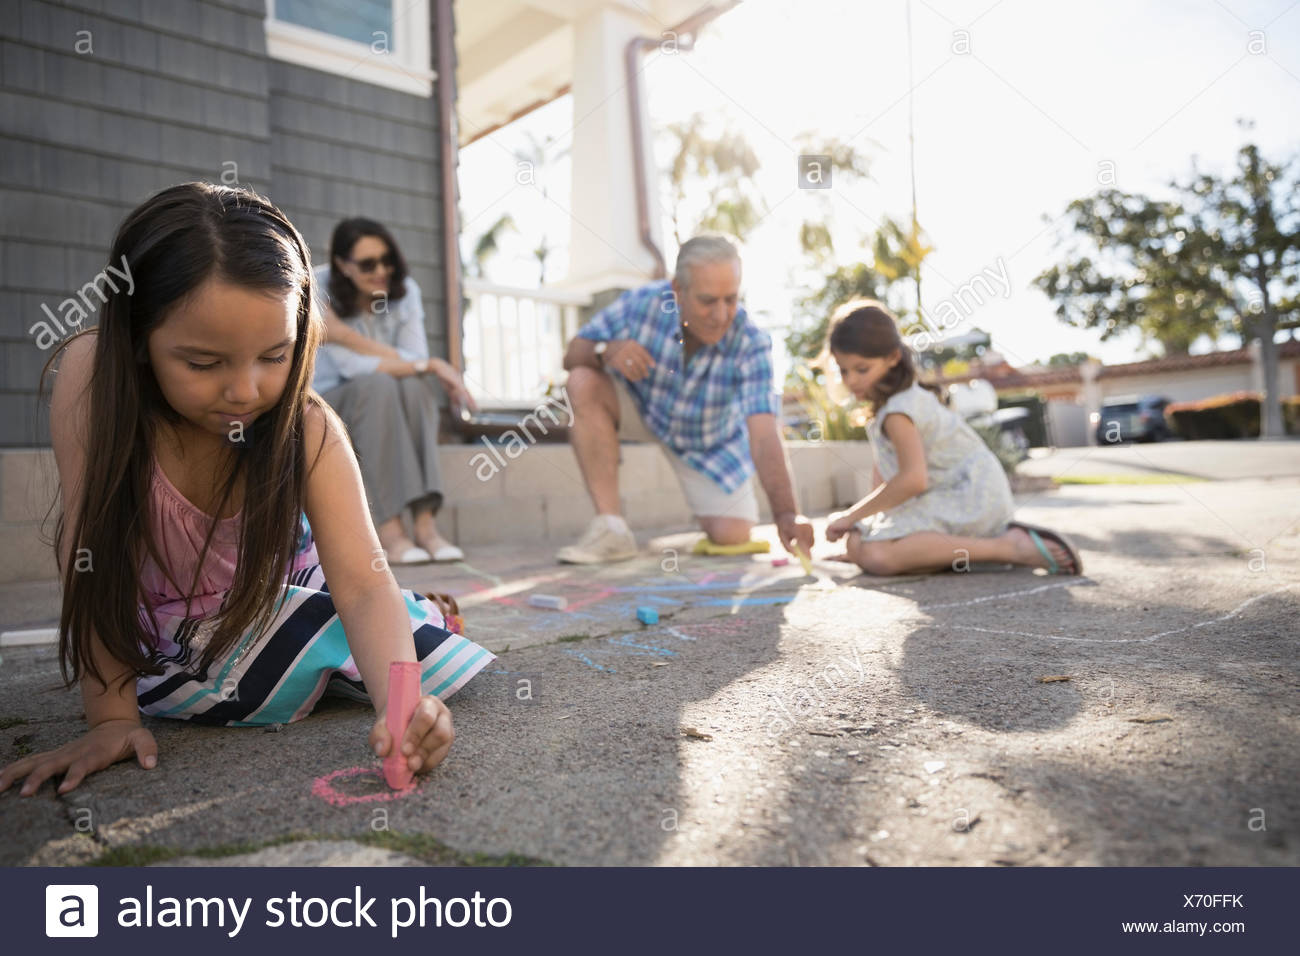 Multi-generation family drawing with sidewalk chalk in driveway - Stock Image